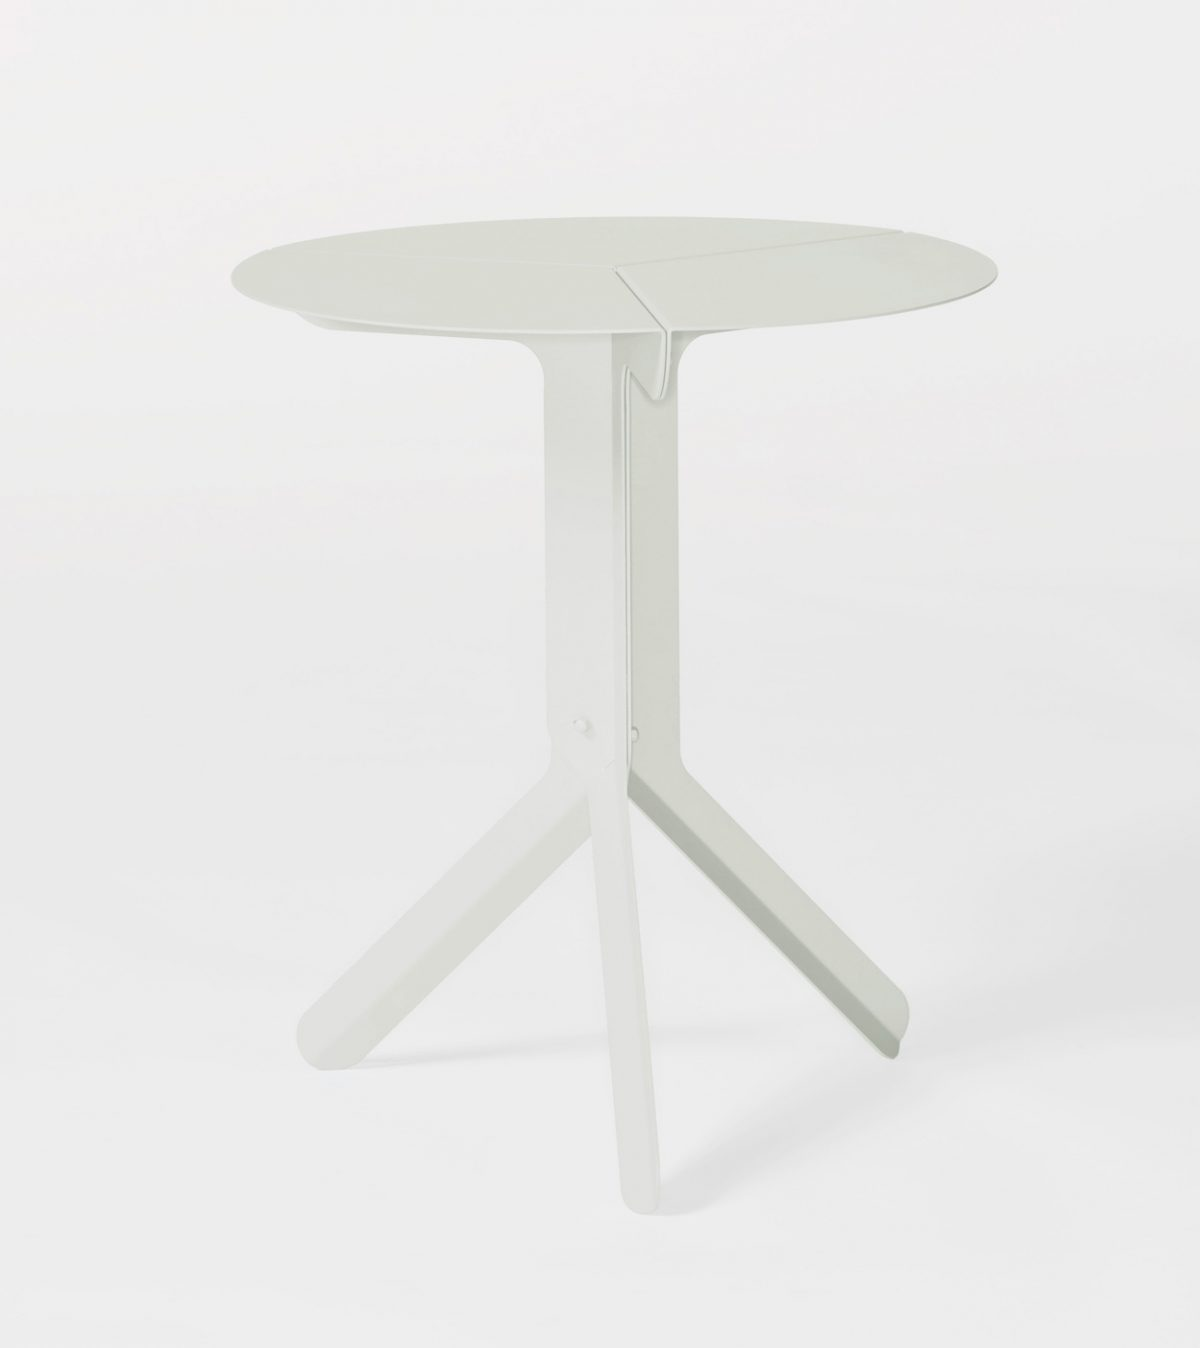 New Duivendrecht sliced table wit hoog, designer Frederik Roijé – gimmii shop